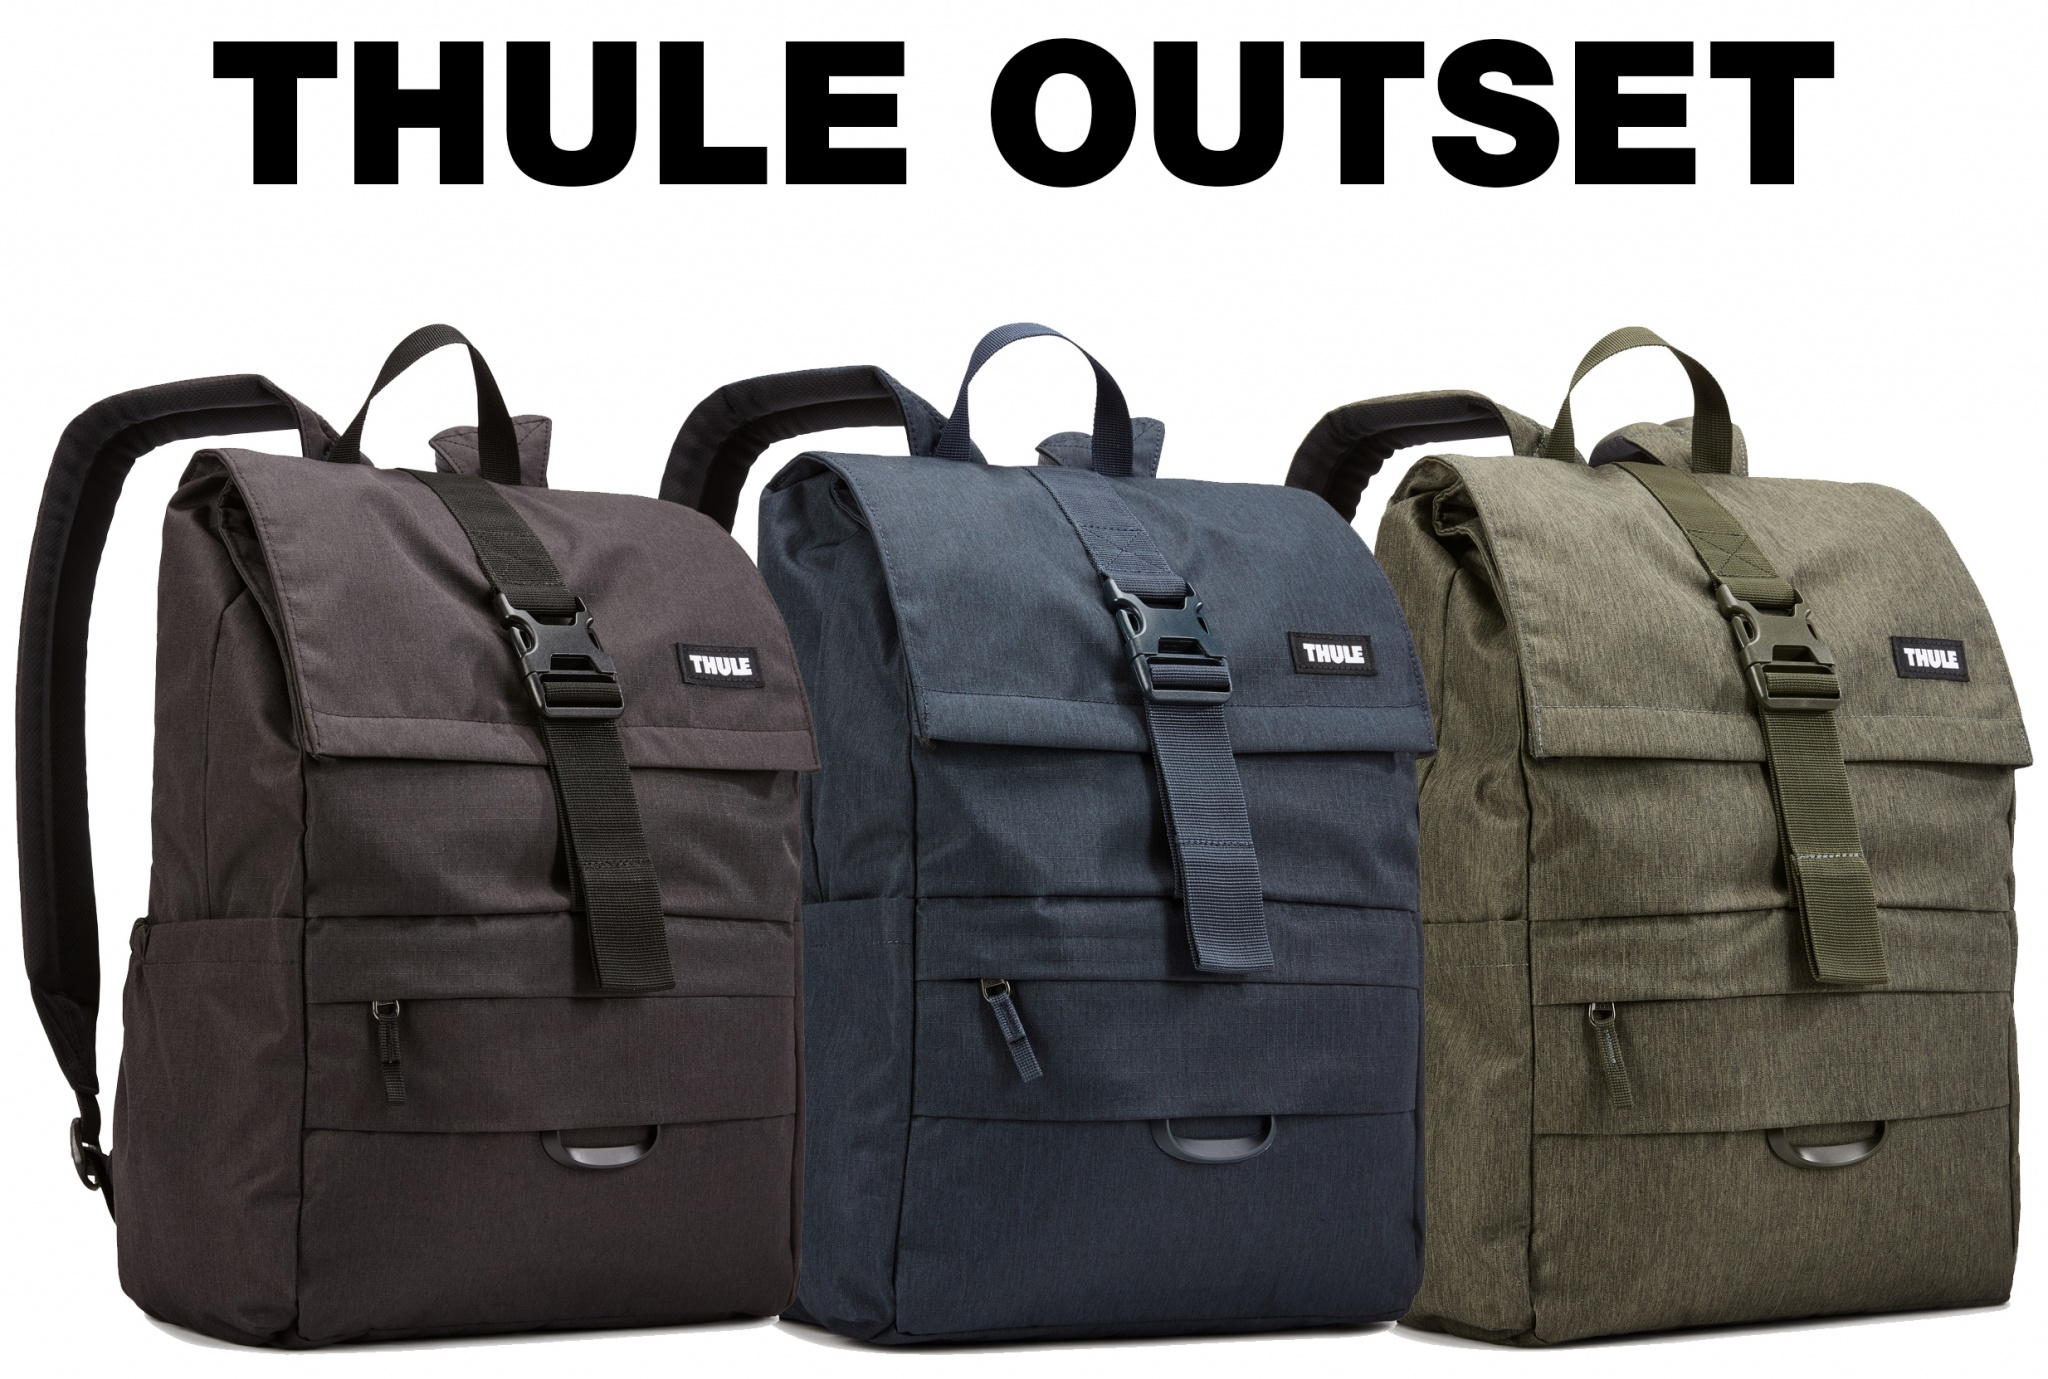 Thule outset backpack.jpg